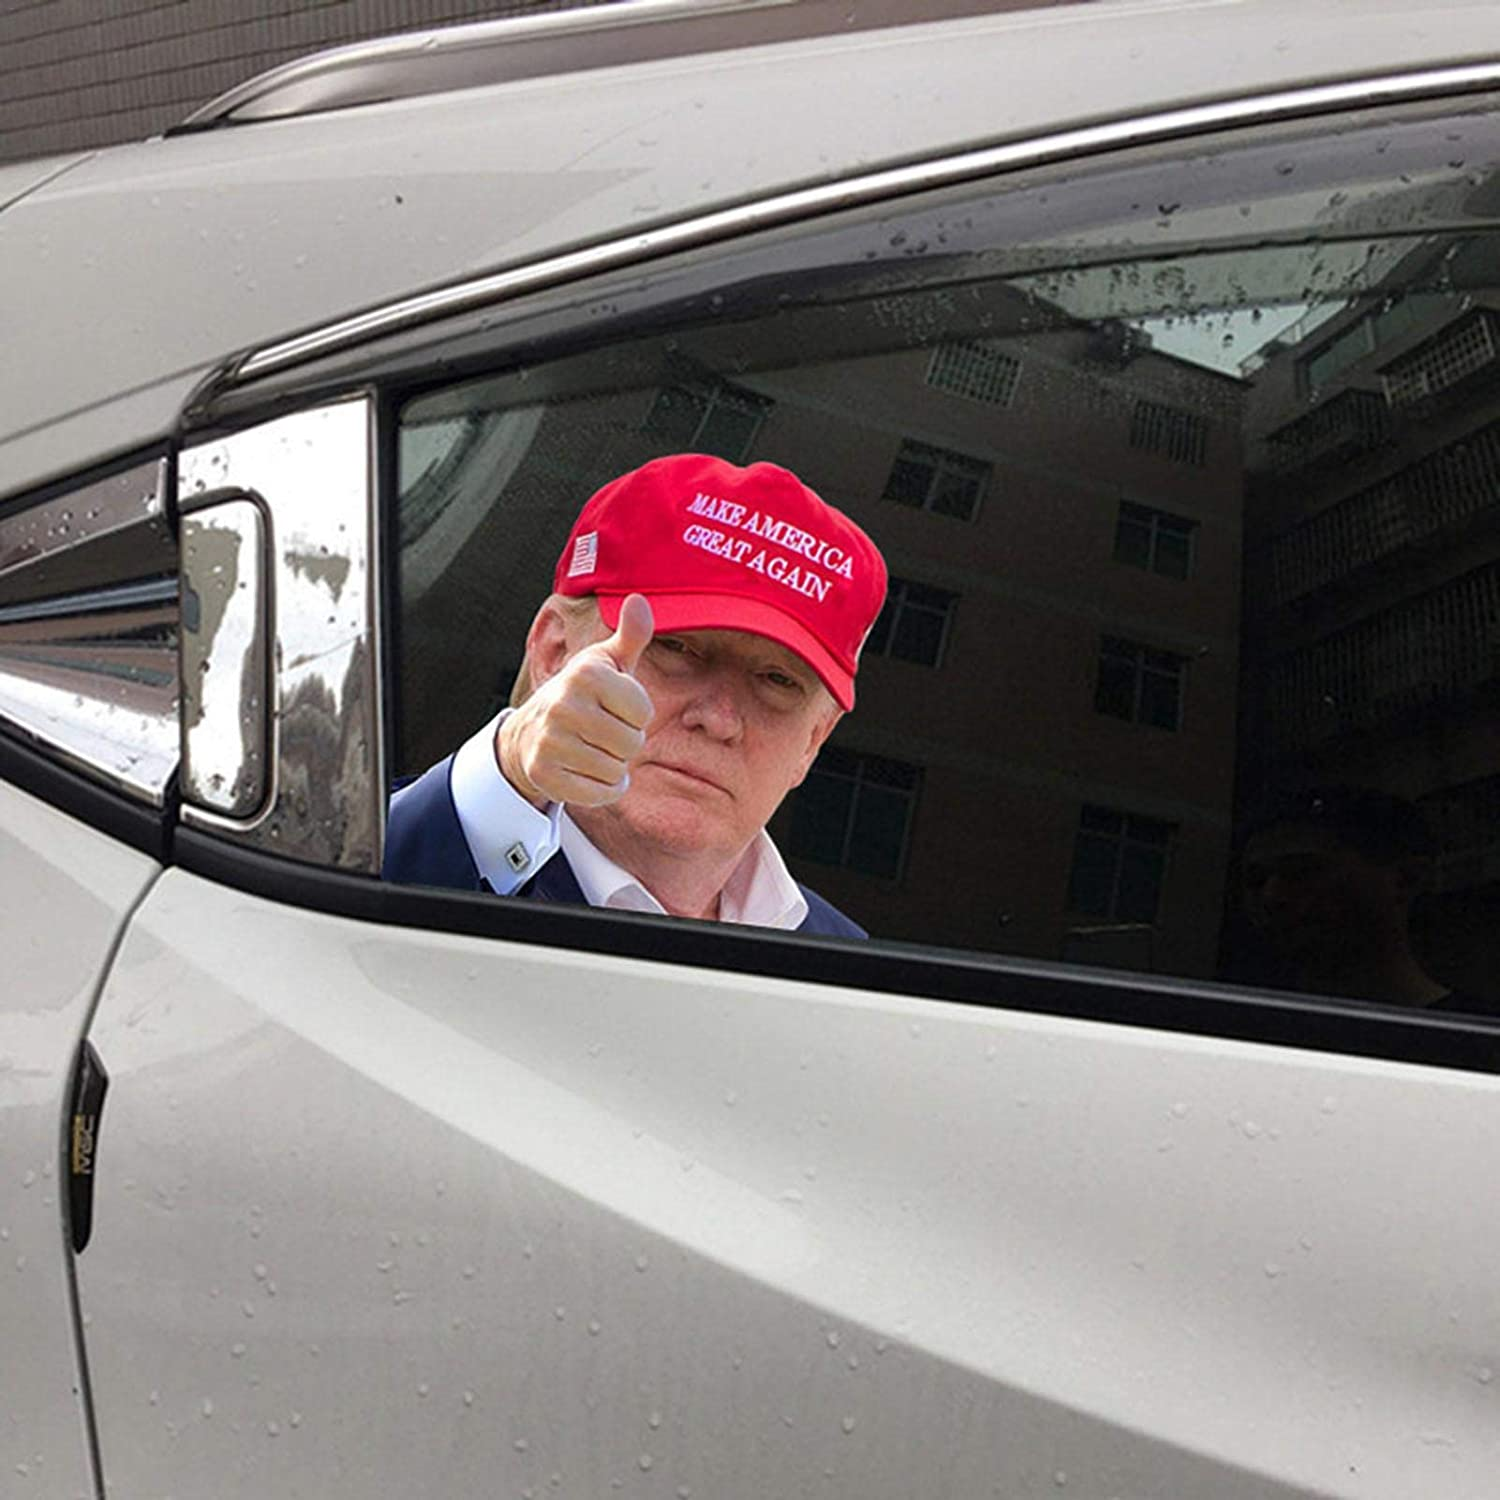 Amazon Com Trump Car Window Stickers Donald Trump Car Sticker Waterproof Pvc Auto Window Decal Easy Removal Leaves No Residue Reflective Funny Stickers Vehicles Accessories 12x10inch Trump A Right Kitchen Dining [ 1500 x 1500 Pixel ]